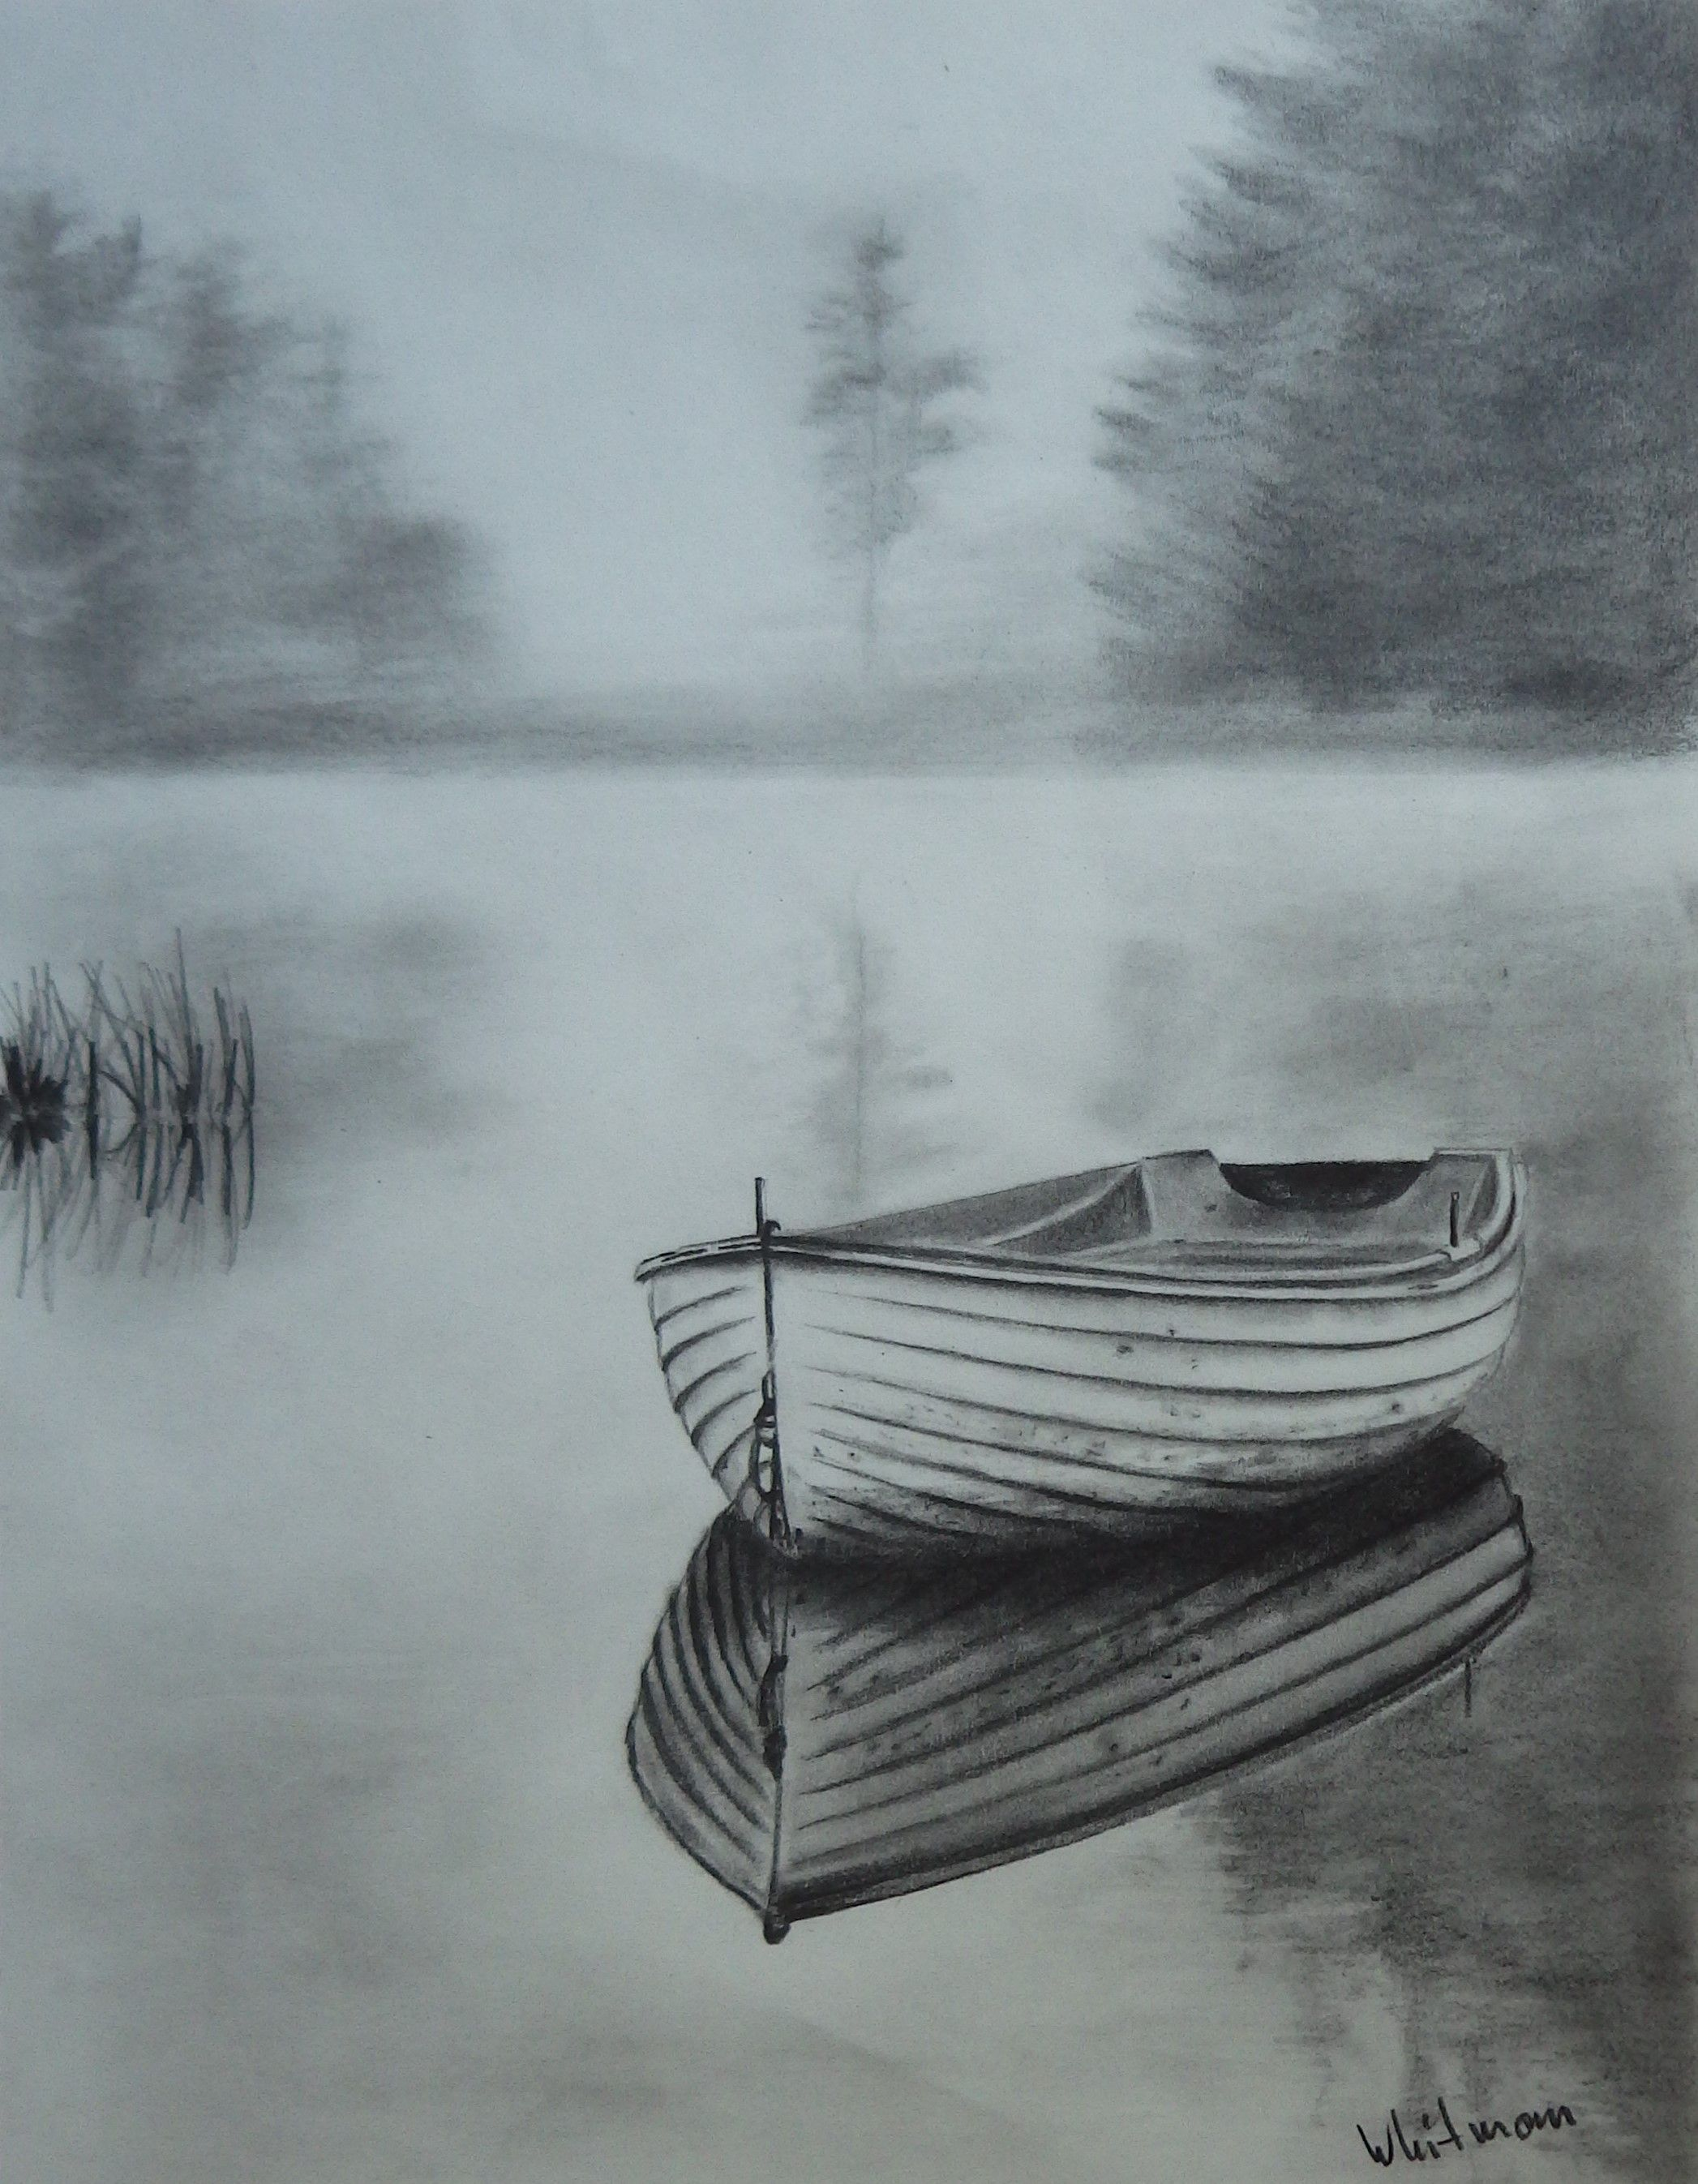 Misty row boat sketch water reflections original art graphite pencil drawing by elena whitman